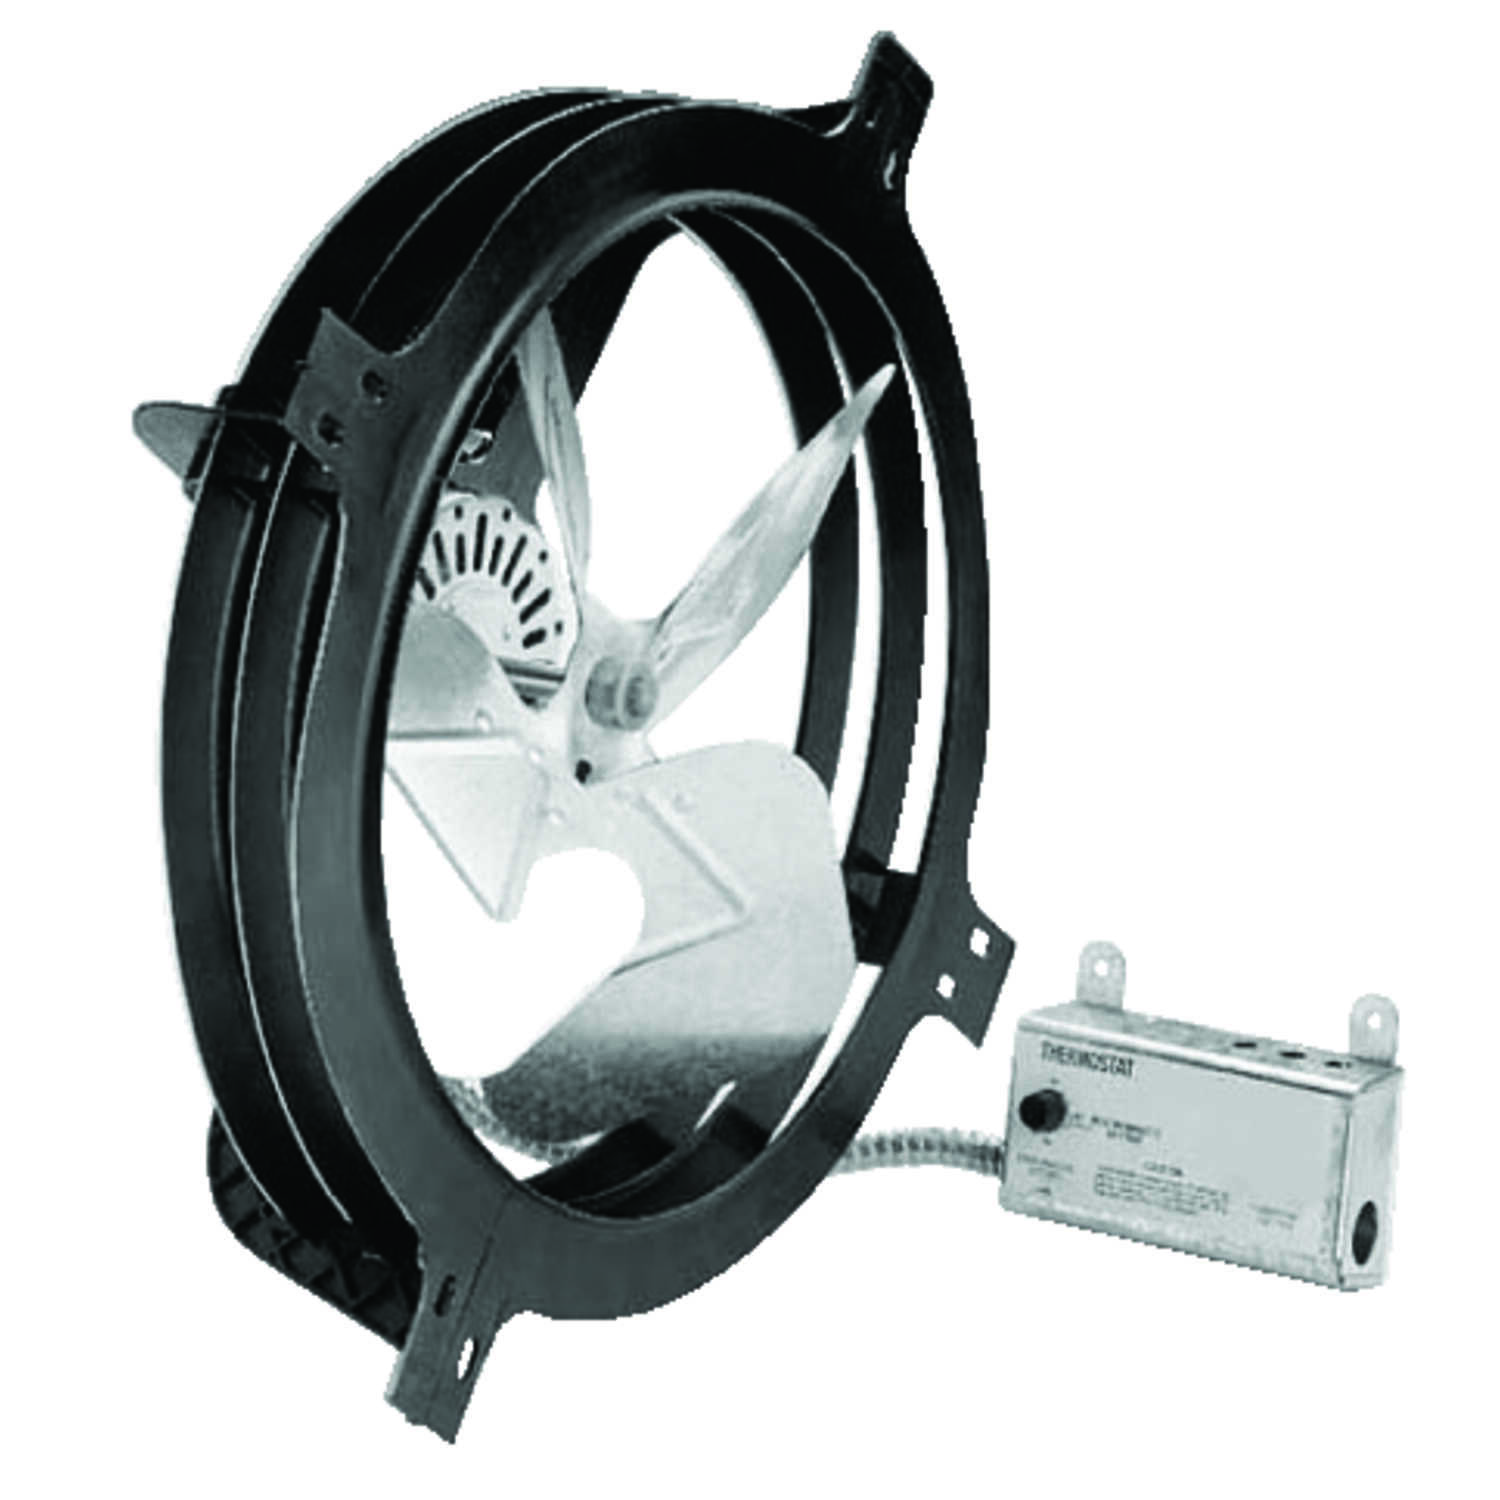 Air Vent  18 in. H x 17.8 in. W x 7.3 in. L x 15 in. Dia. Plastic and Steel  Gable Mount Power Fan